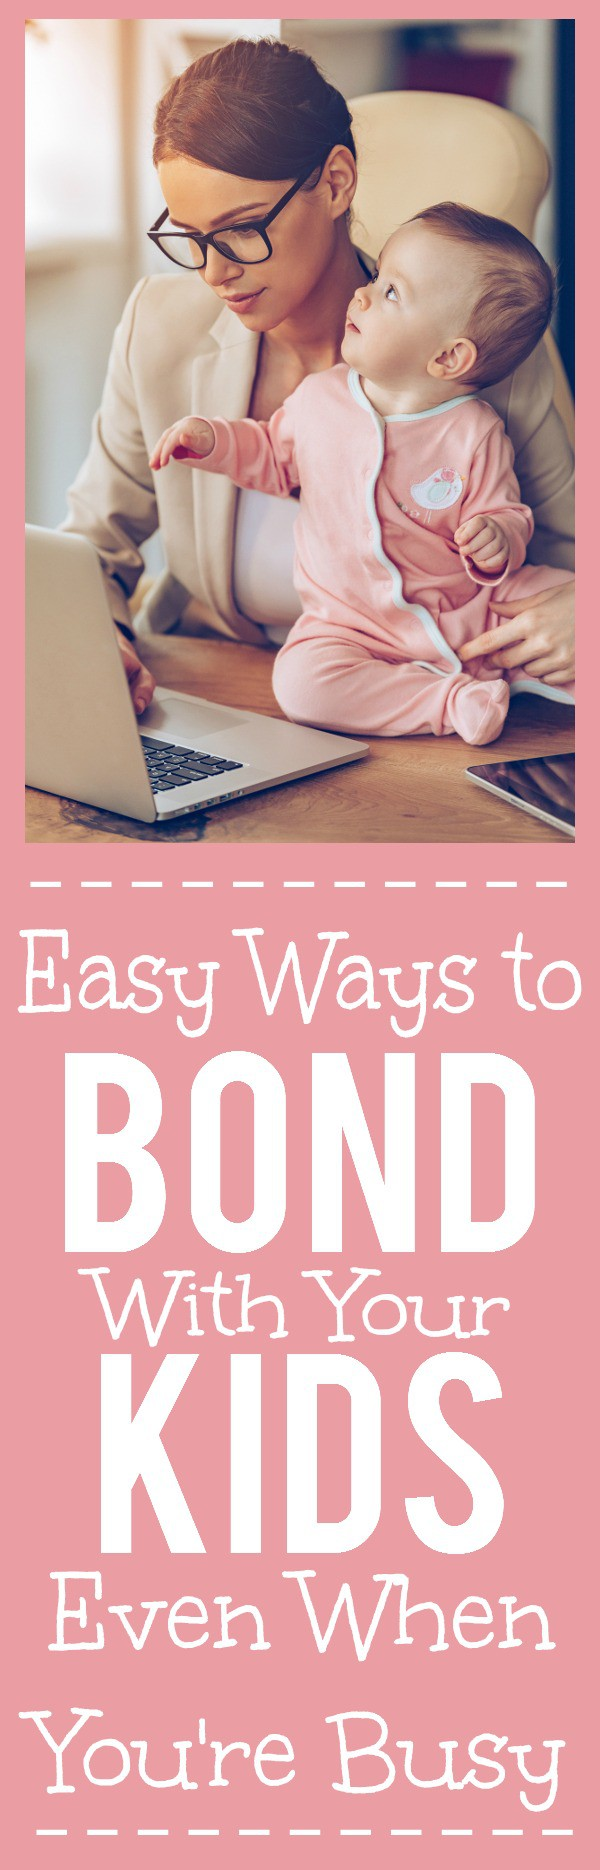 8 Easy Ways to Bond with Your Kids Even When You're Busy - Being busy isn't an excuse for not spending time with your kids! You can still bond and connect even with a hectic schedule, just check out these 8 Easy Ways to Bond with Your Kids When You're Busy.